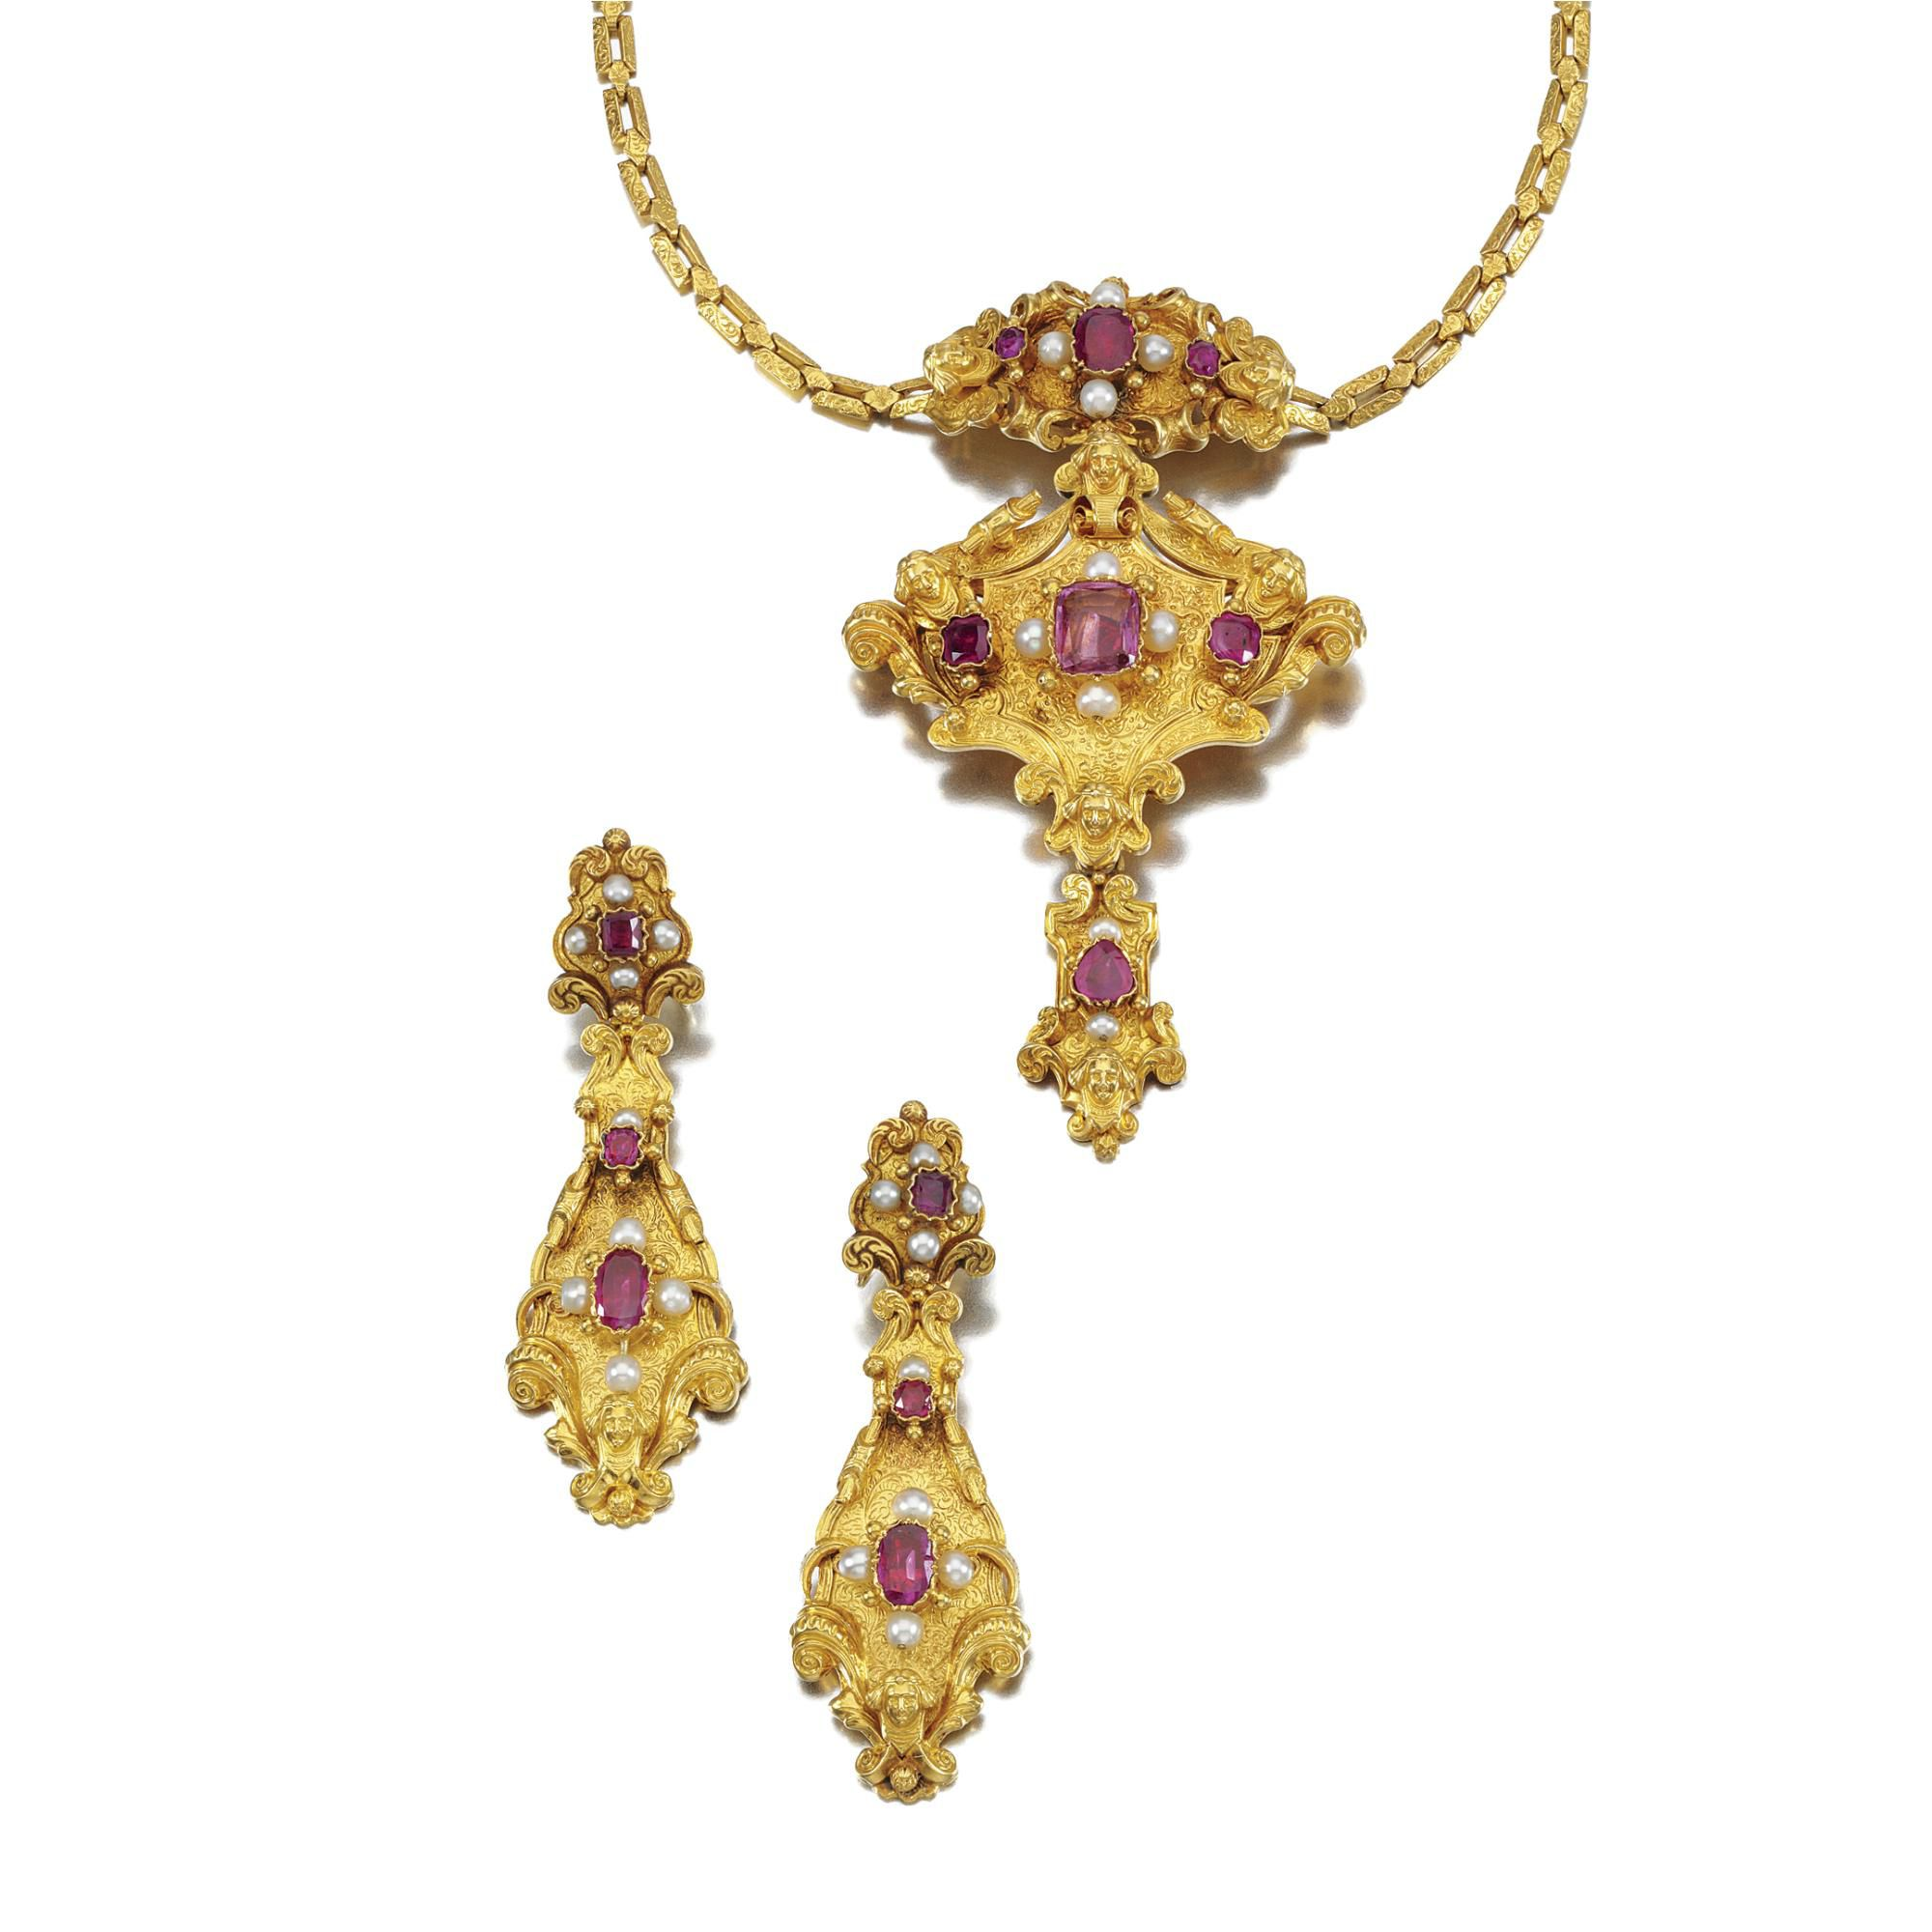 Gold ruby and pearl demiparure mid th century comprising a